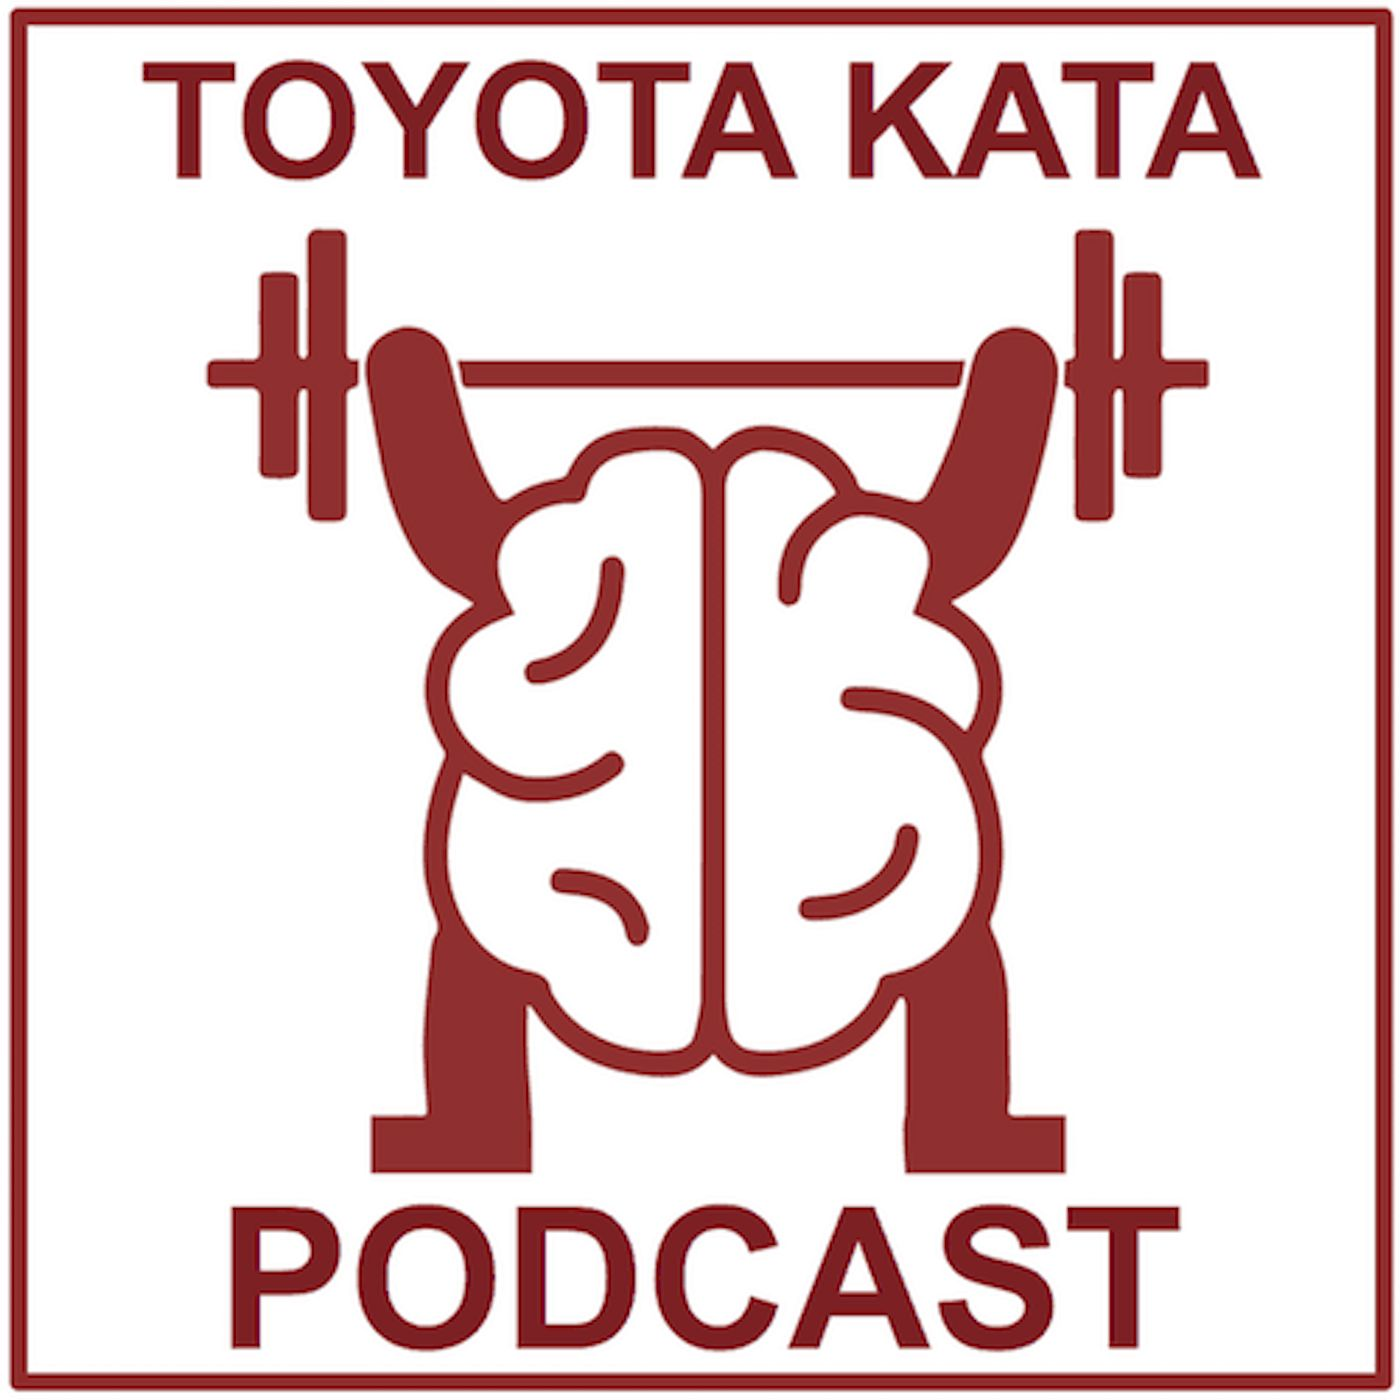 Toyota Kata Podcast